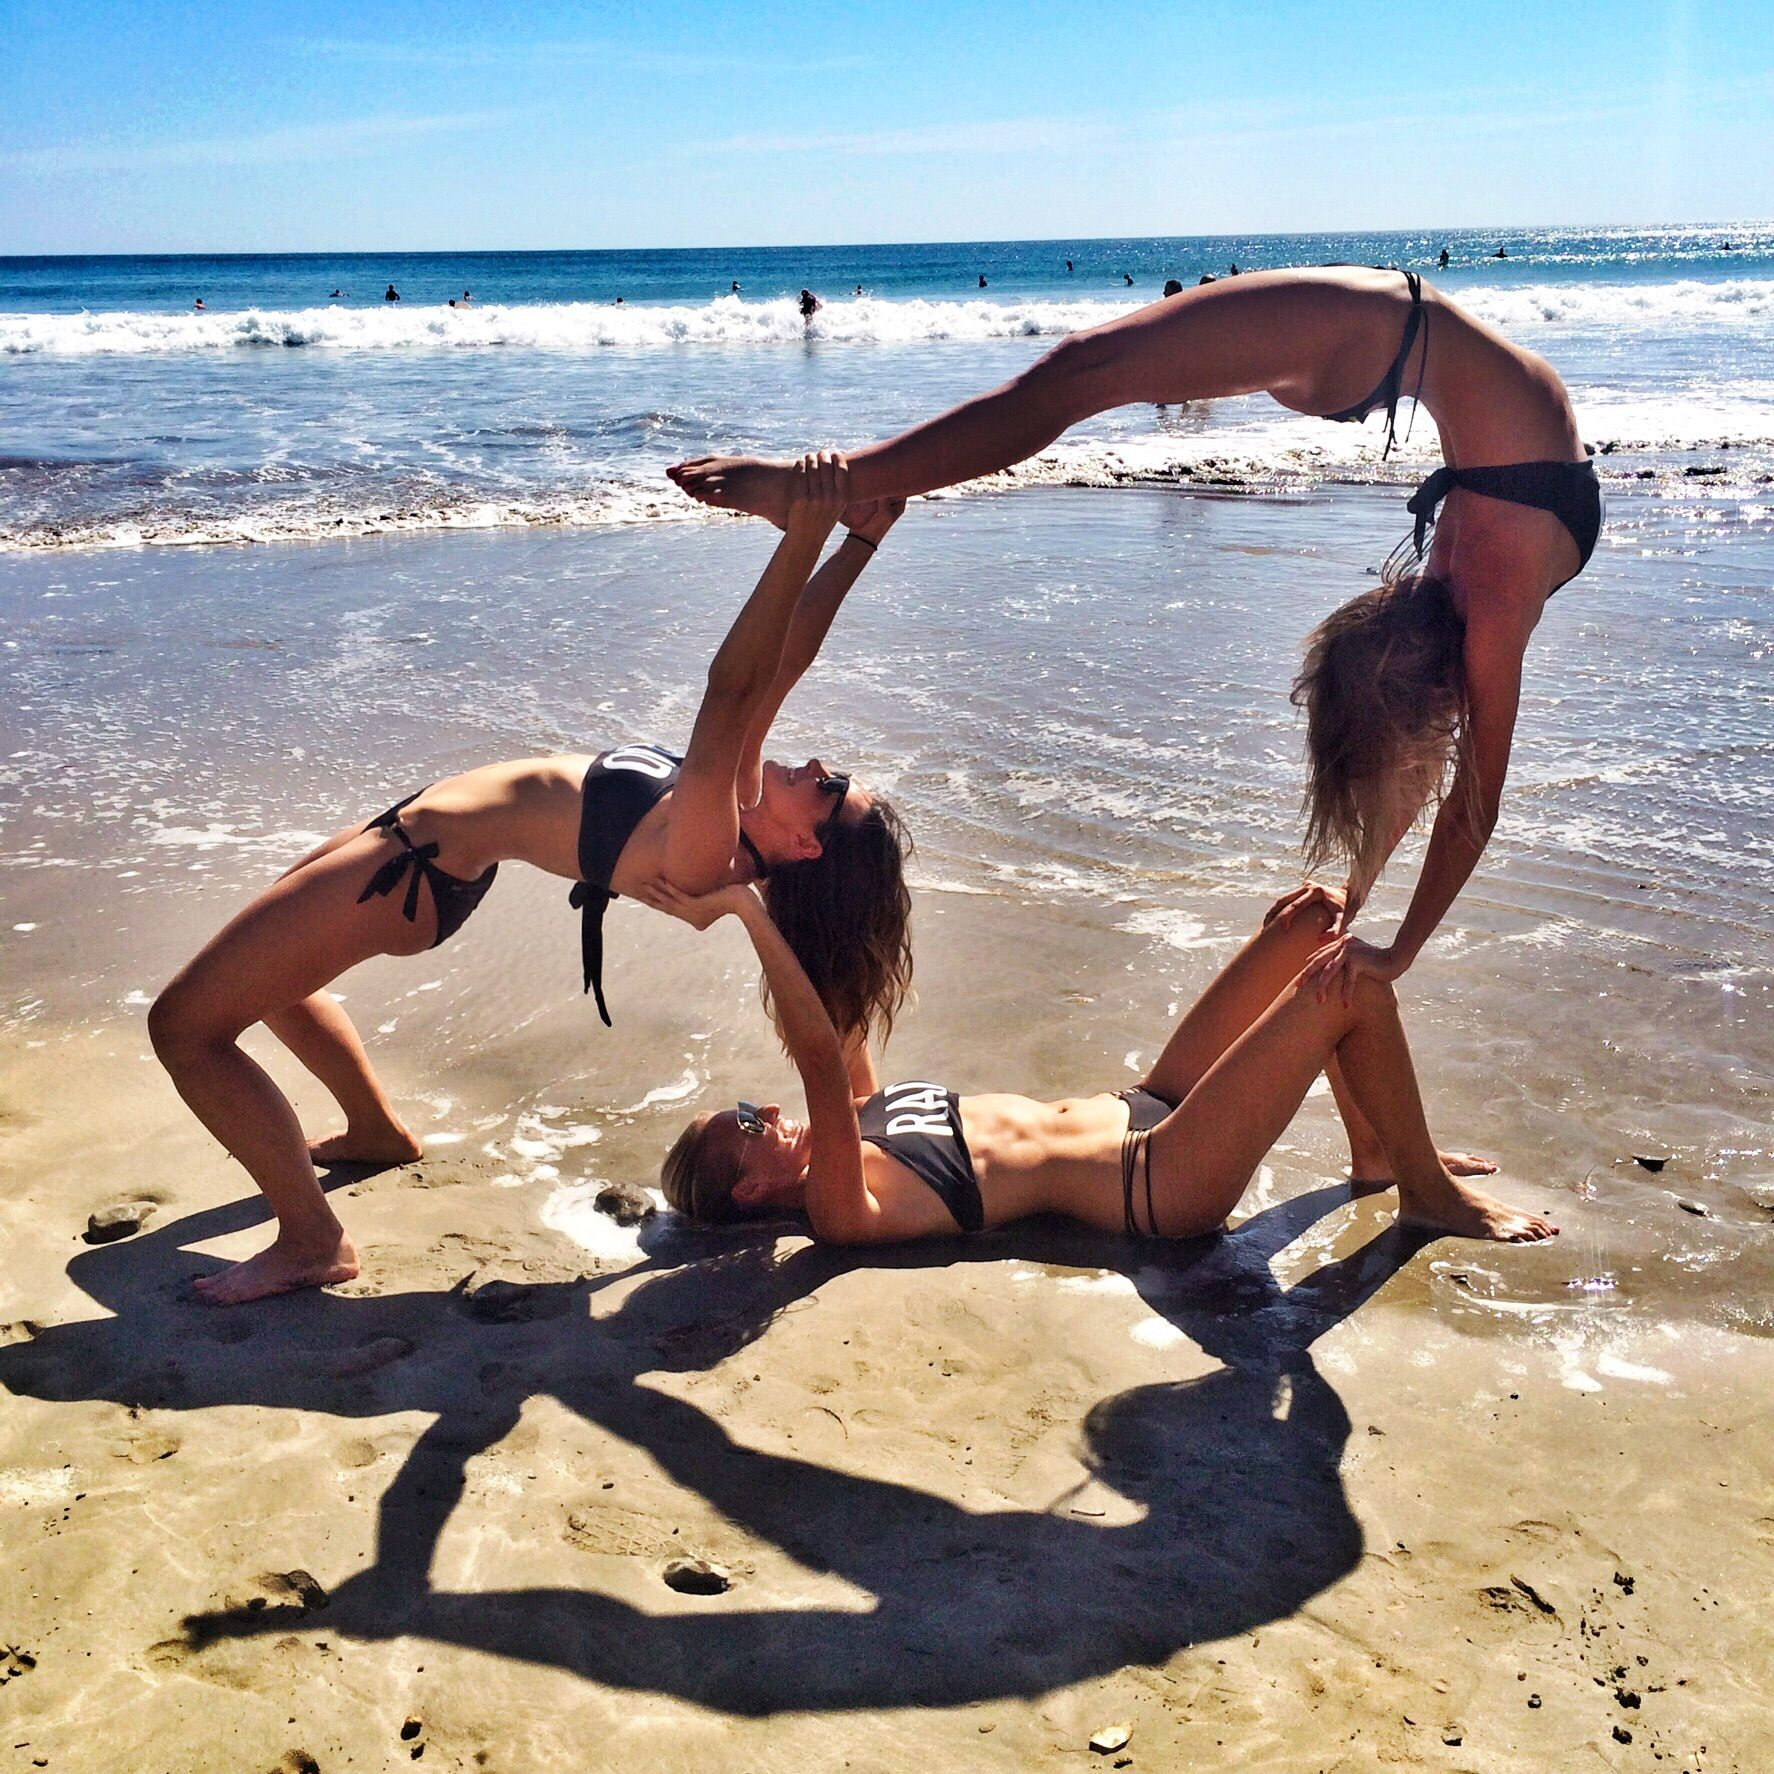 Pin By Tia Mae Wil On Pics To Take In Cali With Sisters Cool